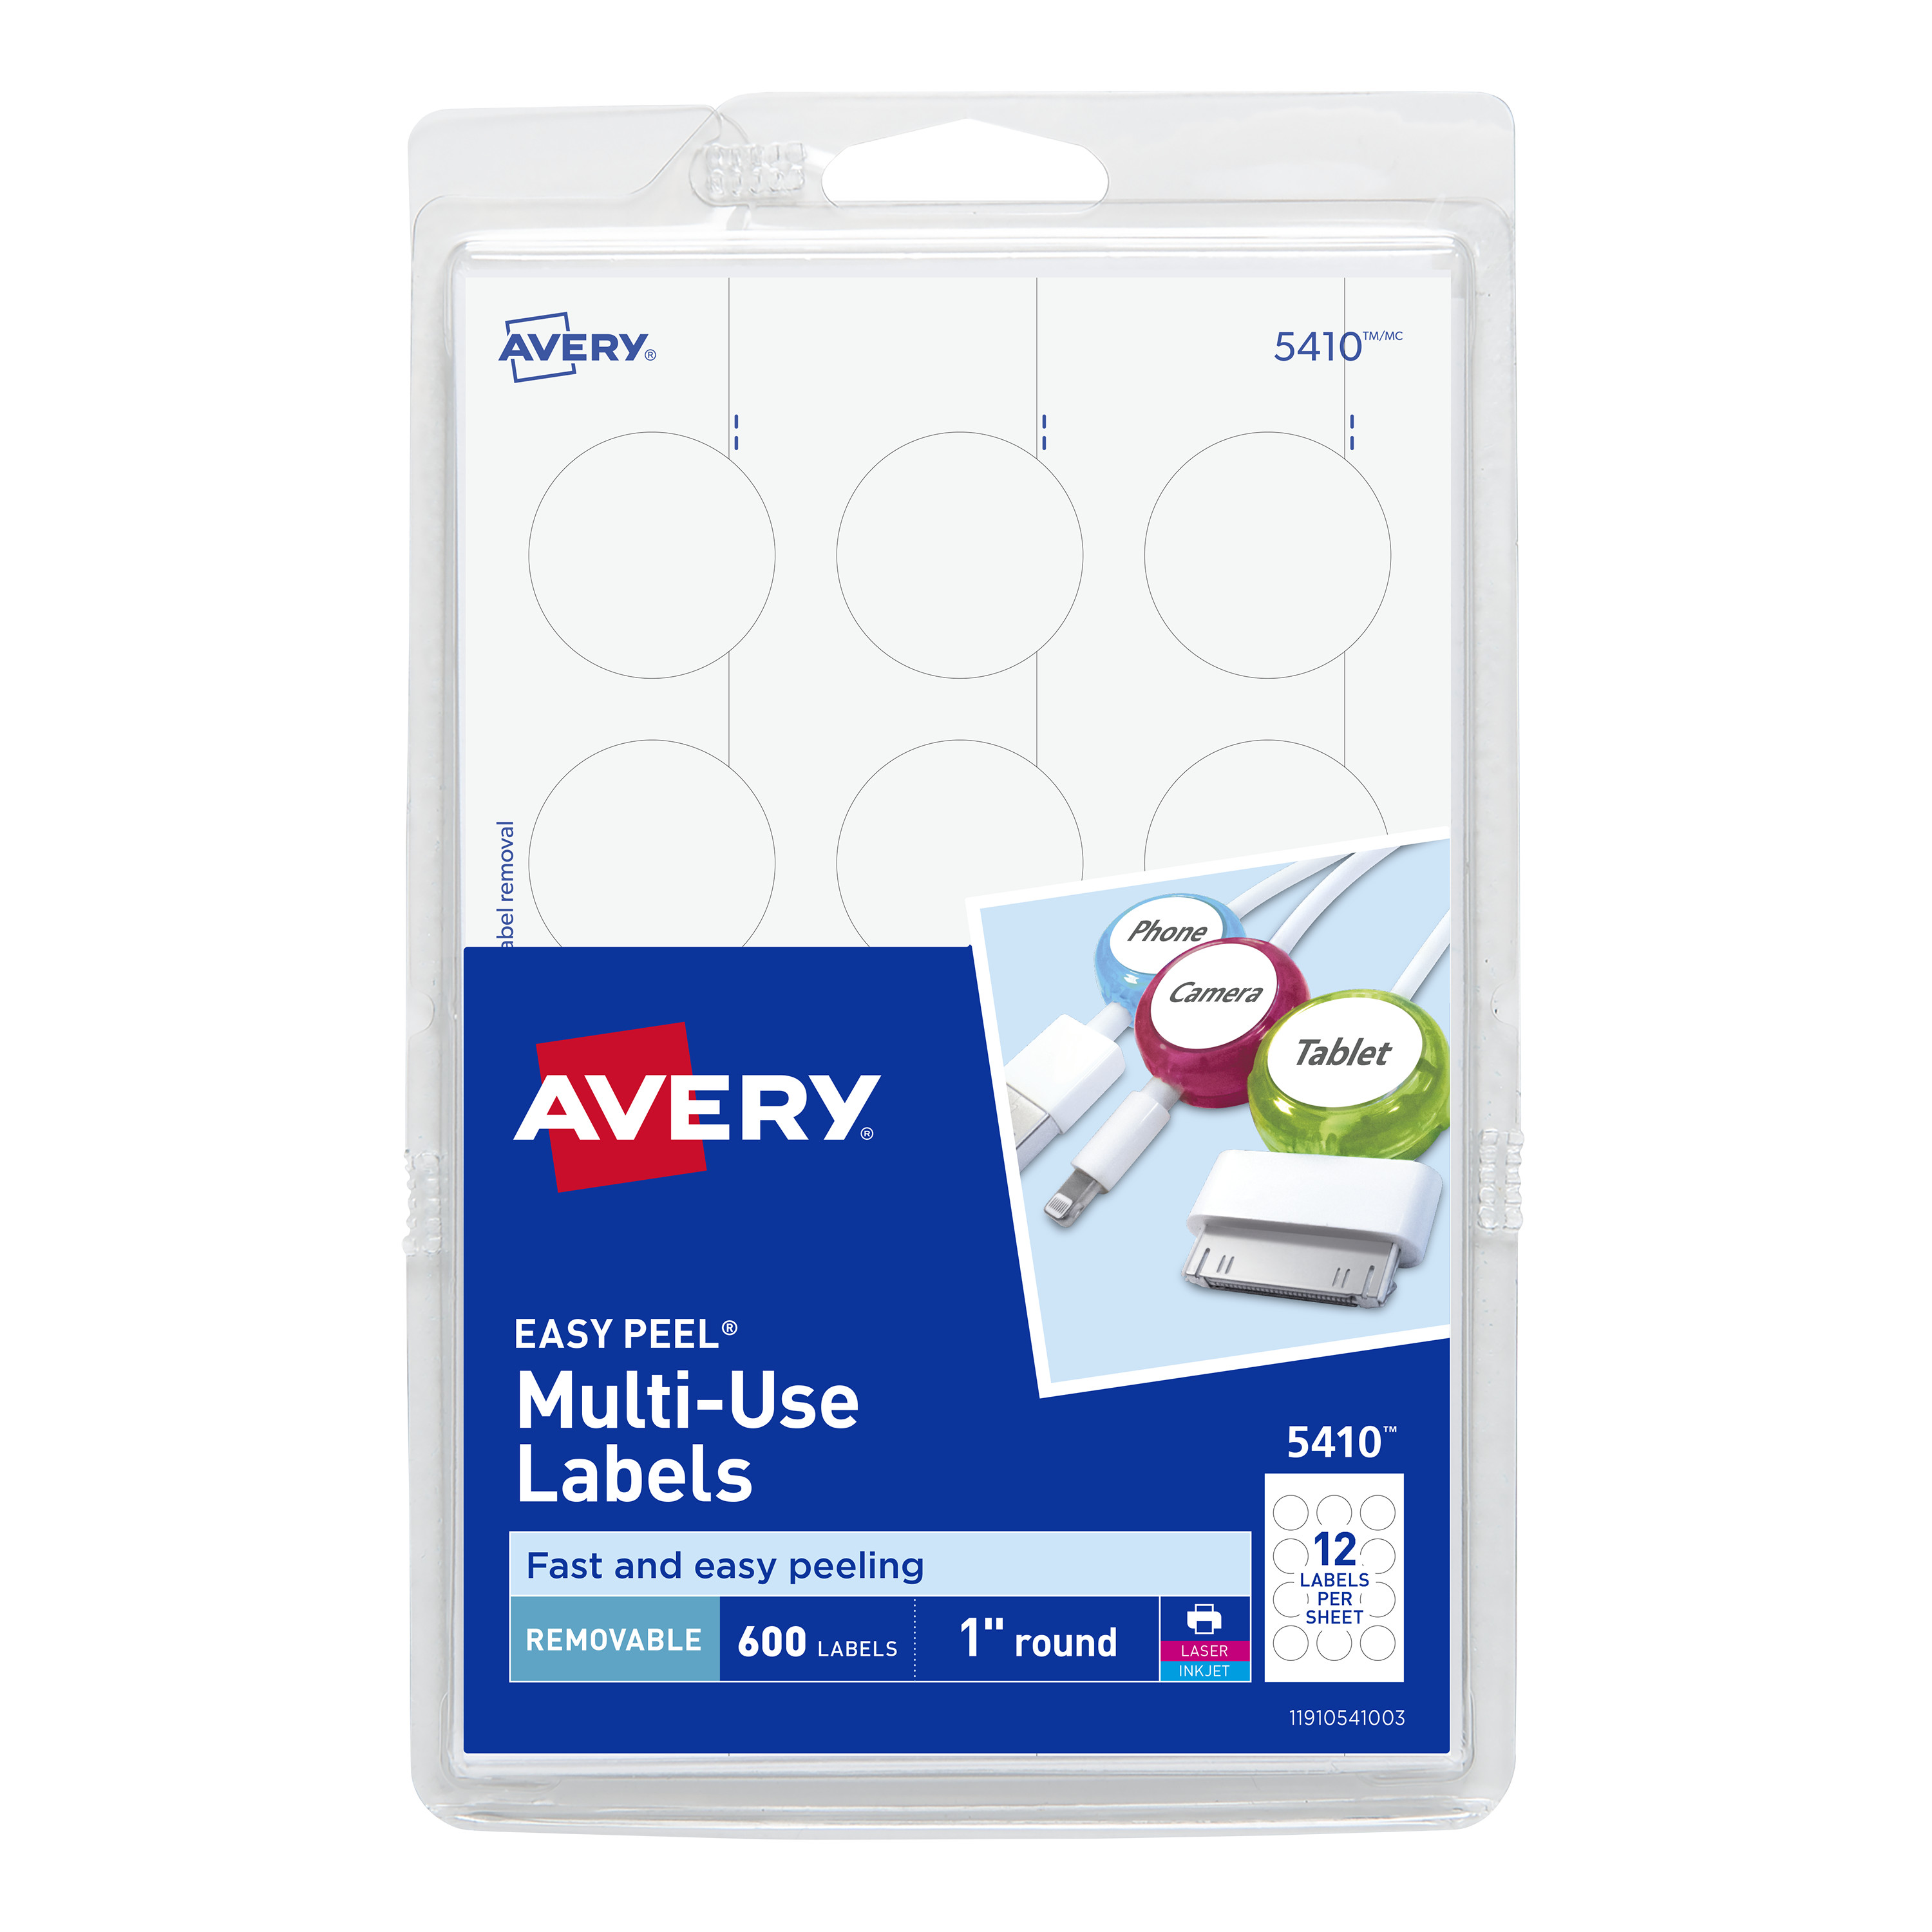 "Avery Removable Multiuse Labels, Removable Adhesive, 1"" Diameter, 600 Labels (5410)"